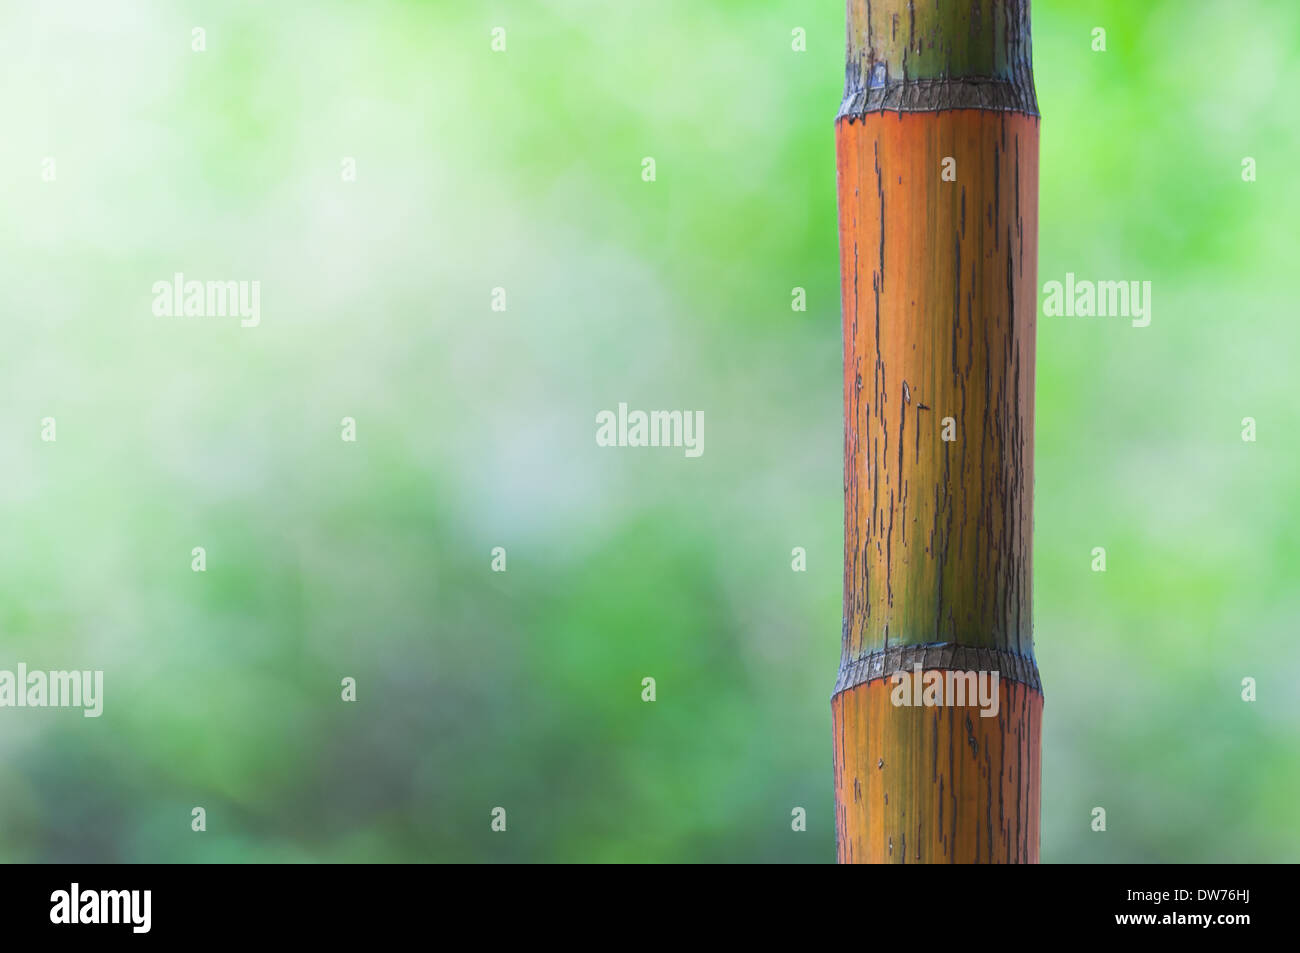 A bamboo stalk in the jungles of Southeast Asia. - Stock Image